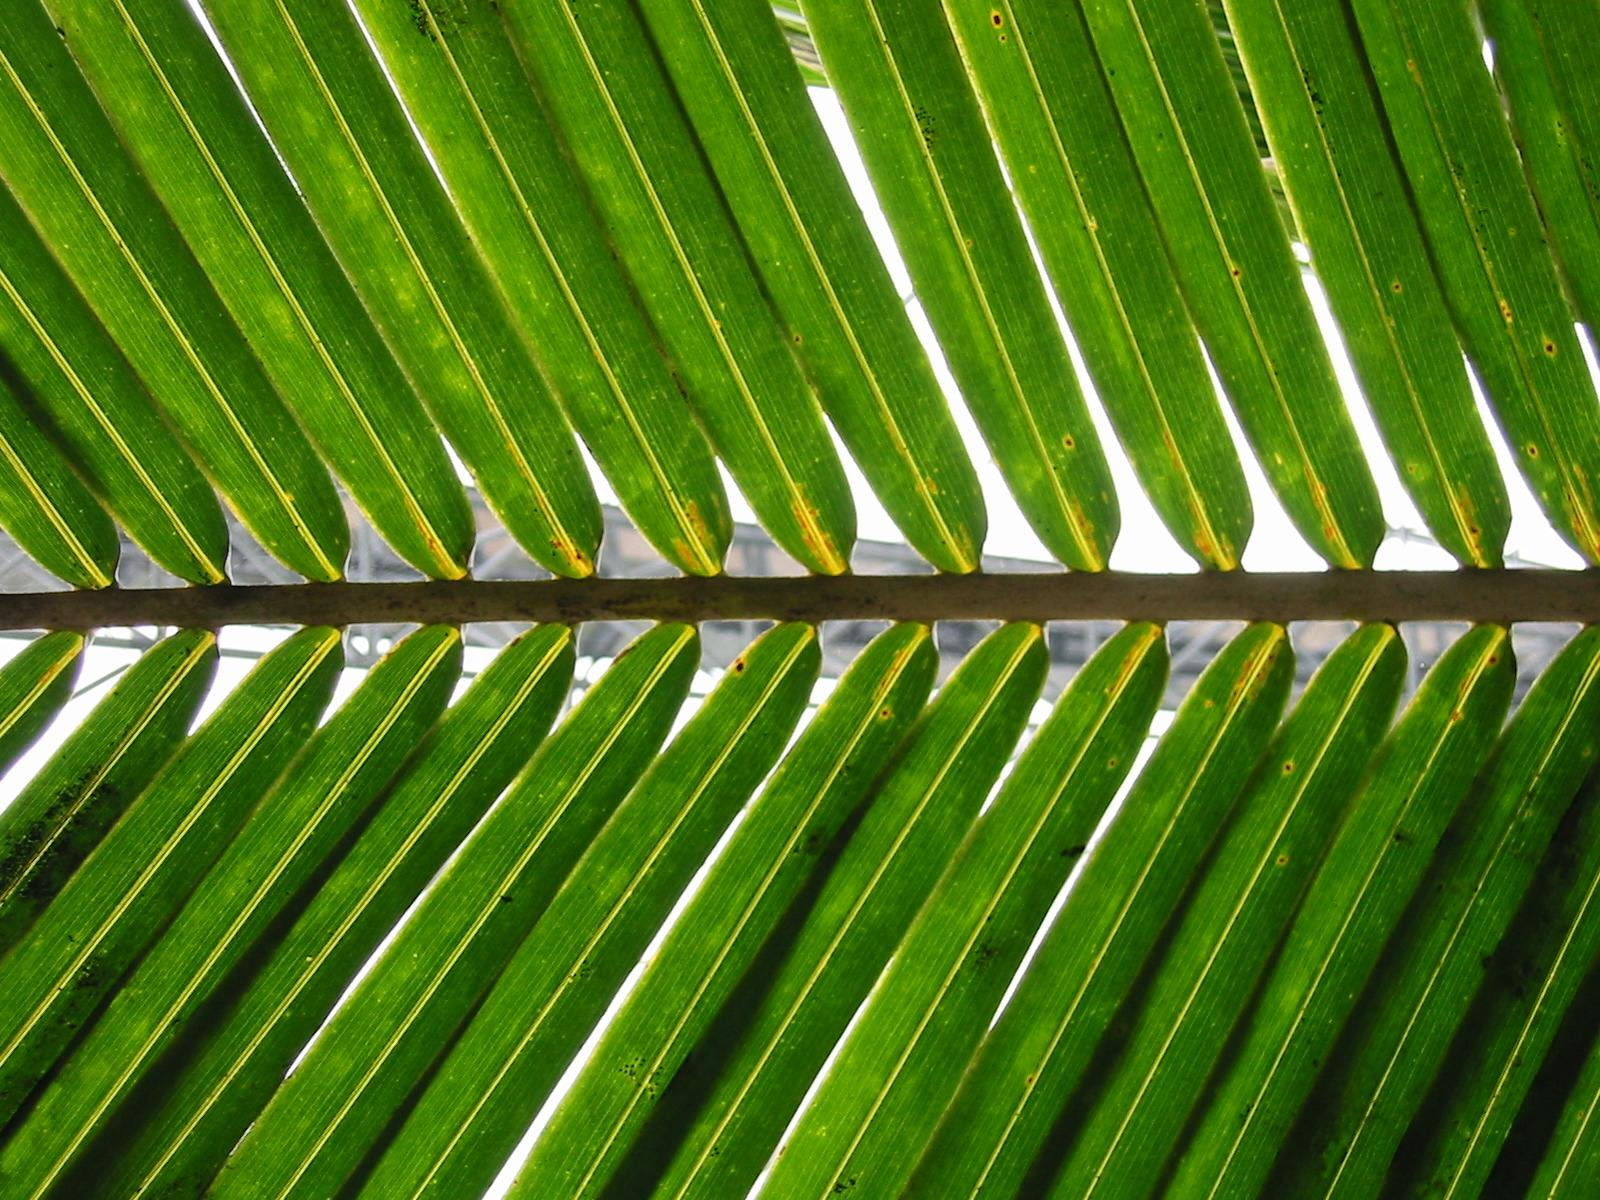 File:Palm frond.jpg - Wikimedia Commons